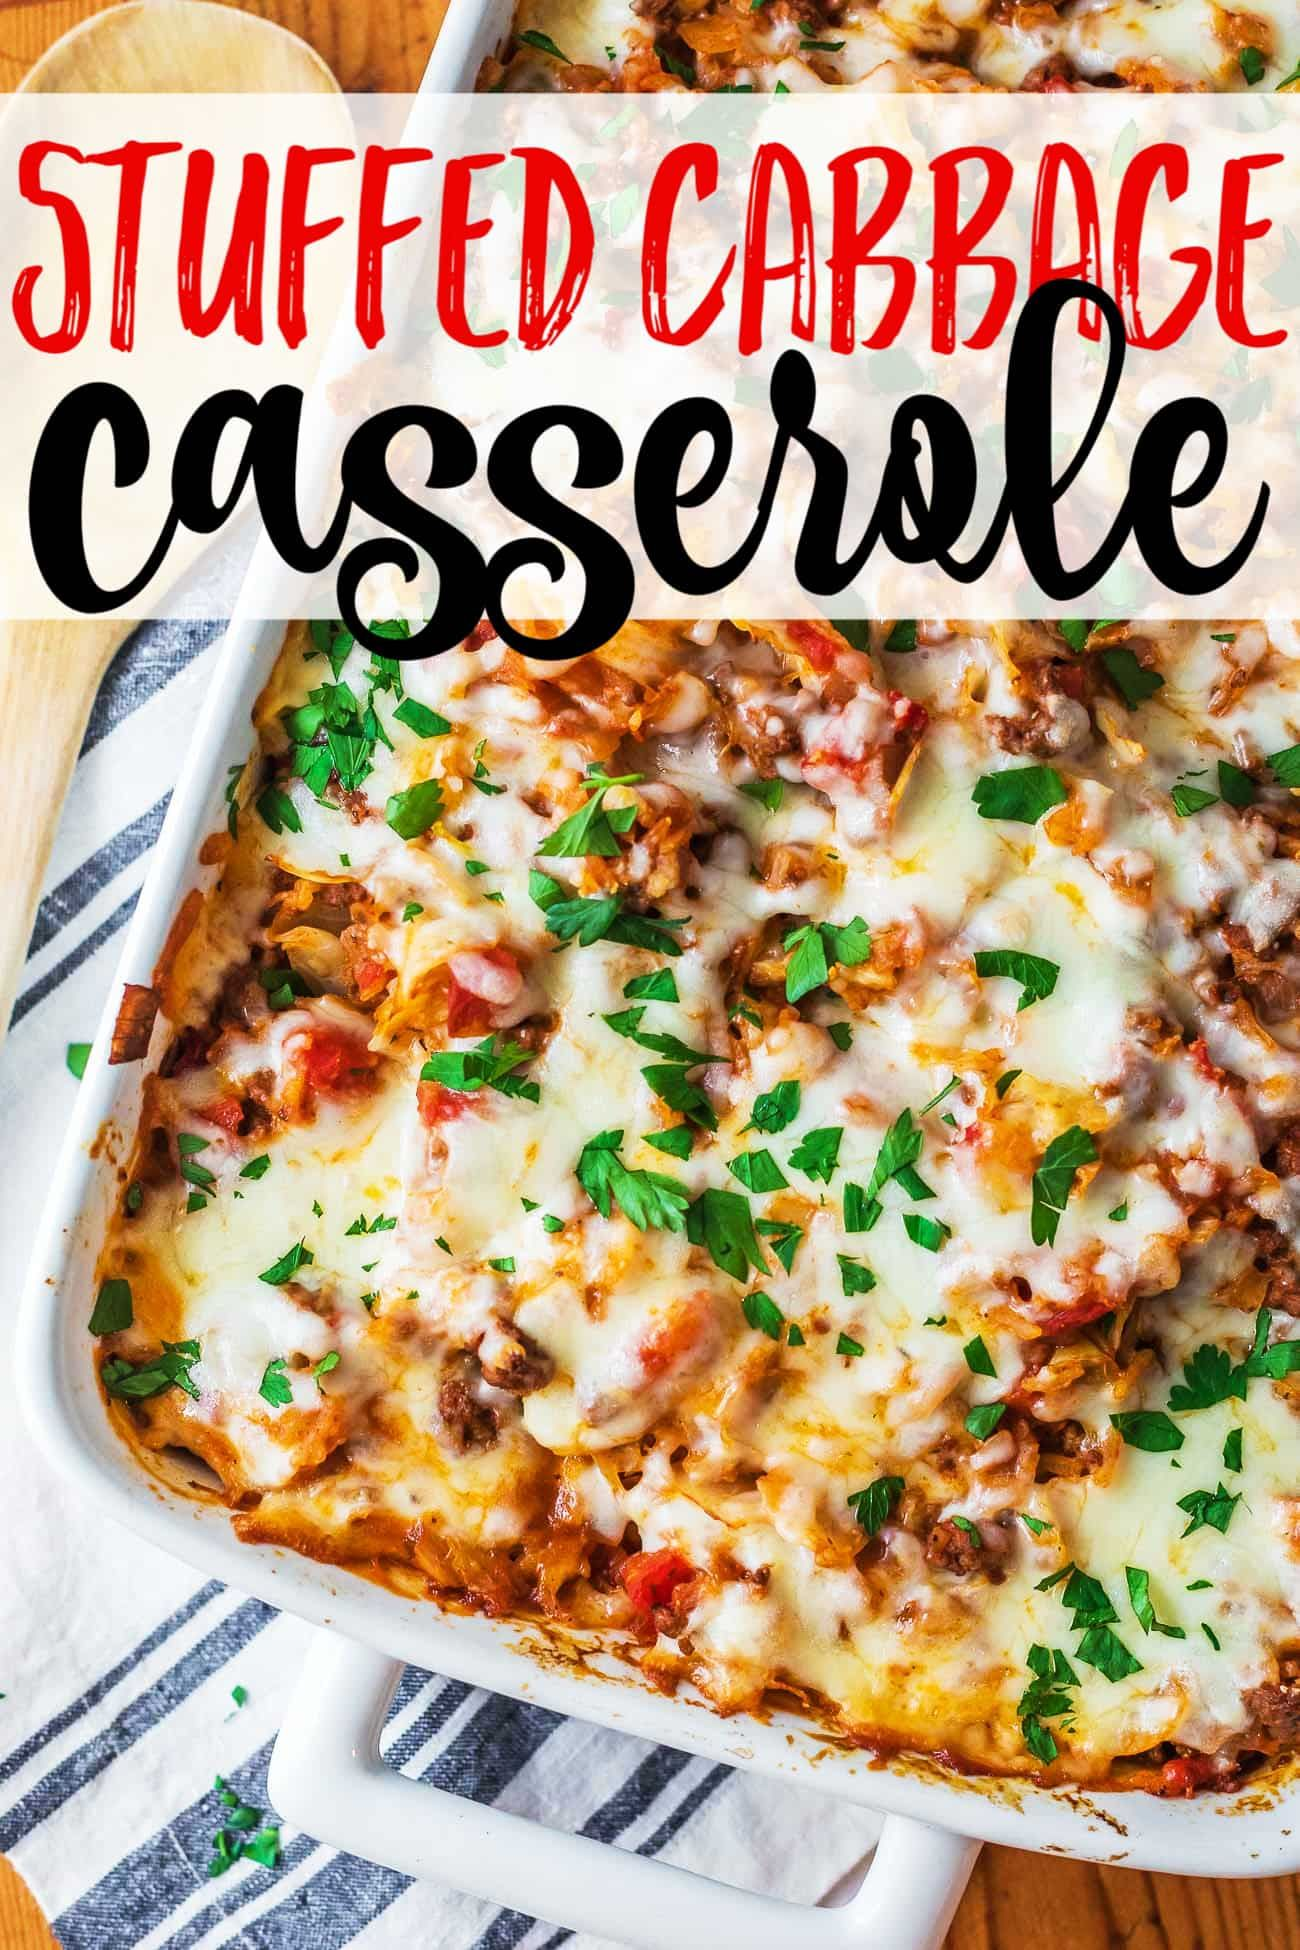 Stuffed Cabbage Casserole Cabbage Roll Casserole Casserole Crissy Recipe In 2020 Cabbage Casserole Recipes Cabbage Roll Casserole Ground Beef Casserole Recipes